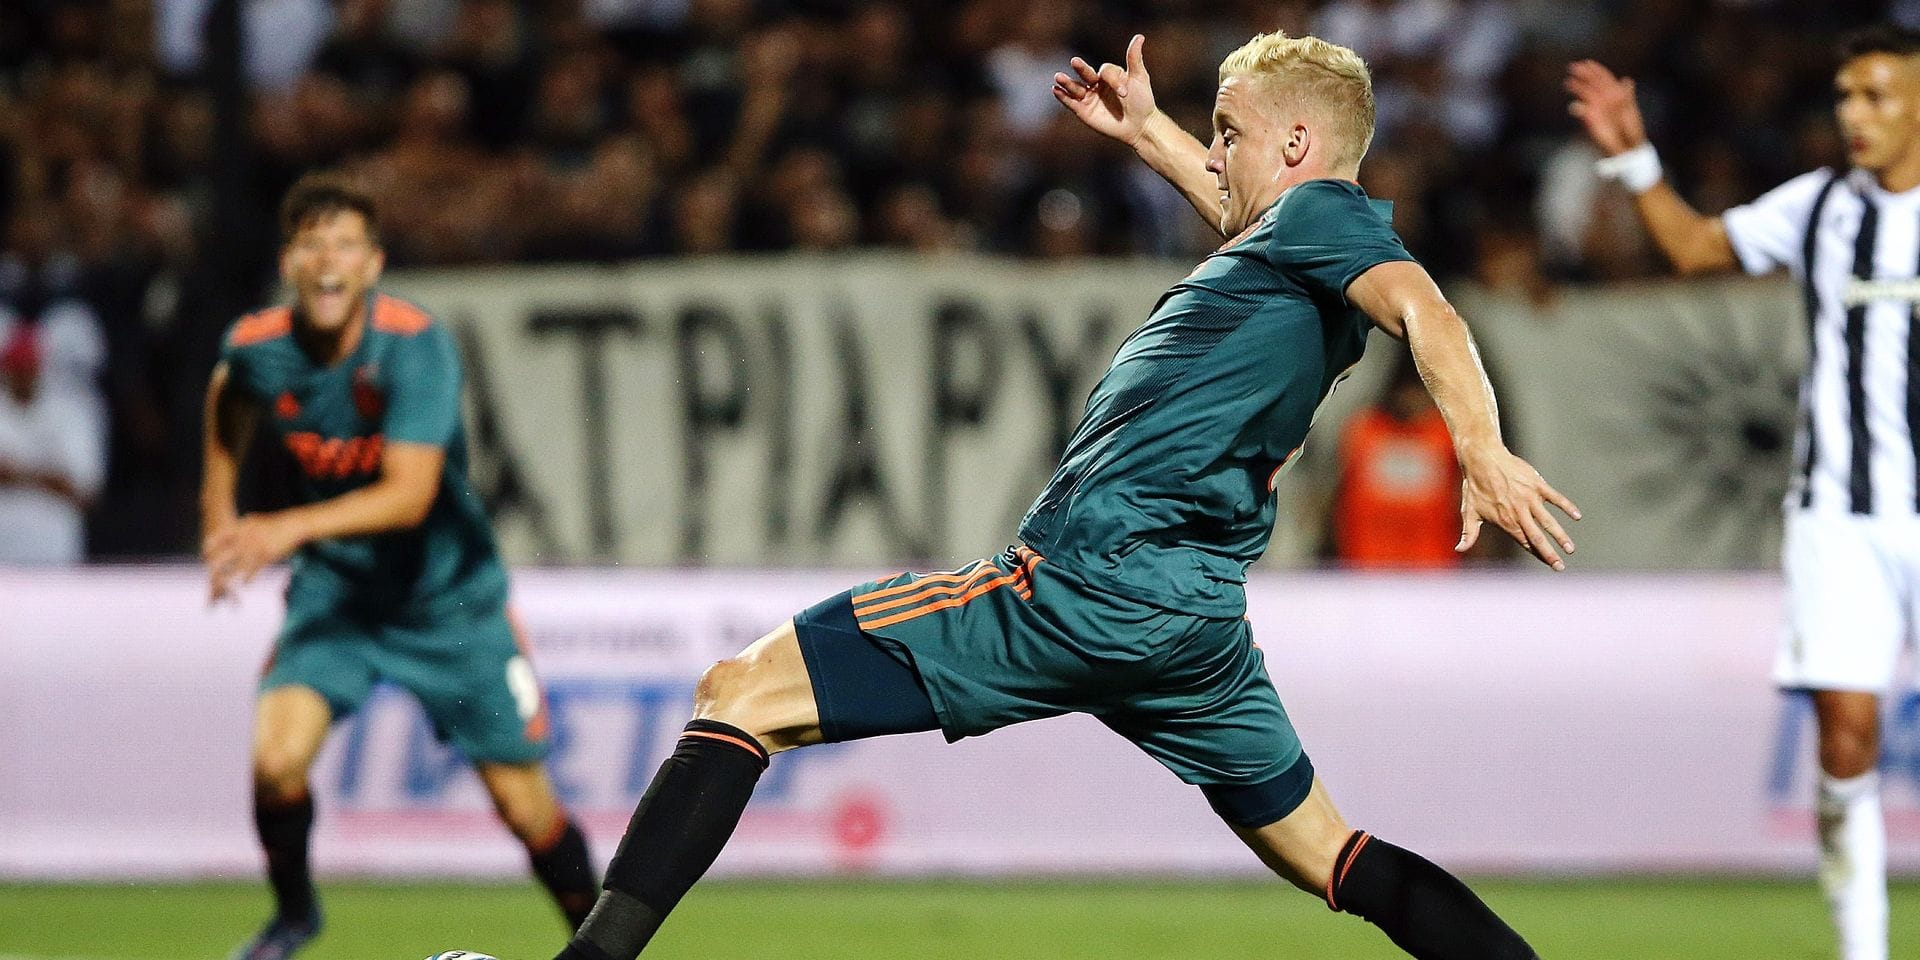 Ajax's Donny van de Beek runs with the ball during a Champions League third qualifying round, first leg soccer match between PAOK FC and AFC Ajax, at Toumba Stadium in the northern Greek port city of Thessaloniki, Tuesday, Aug. 6, 2019. (AP Photo/Giannis Papanikos)